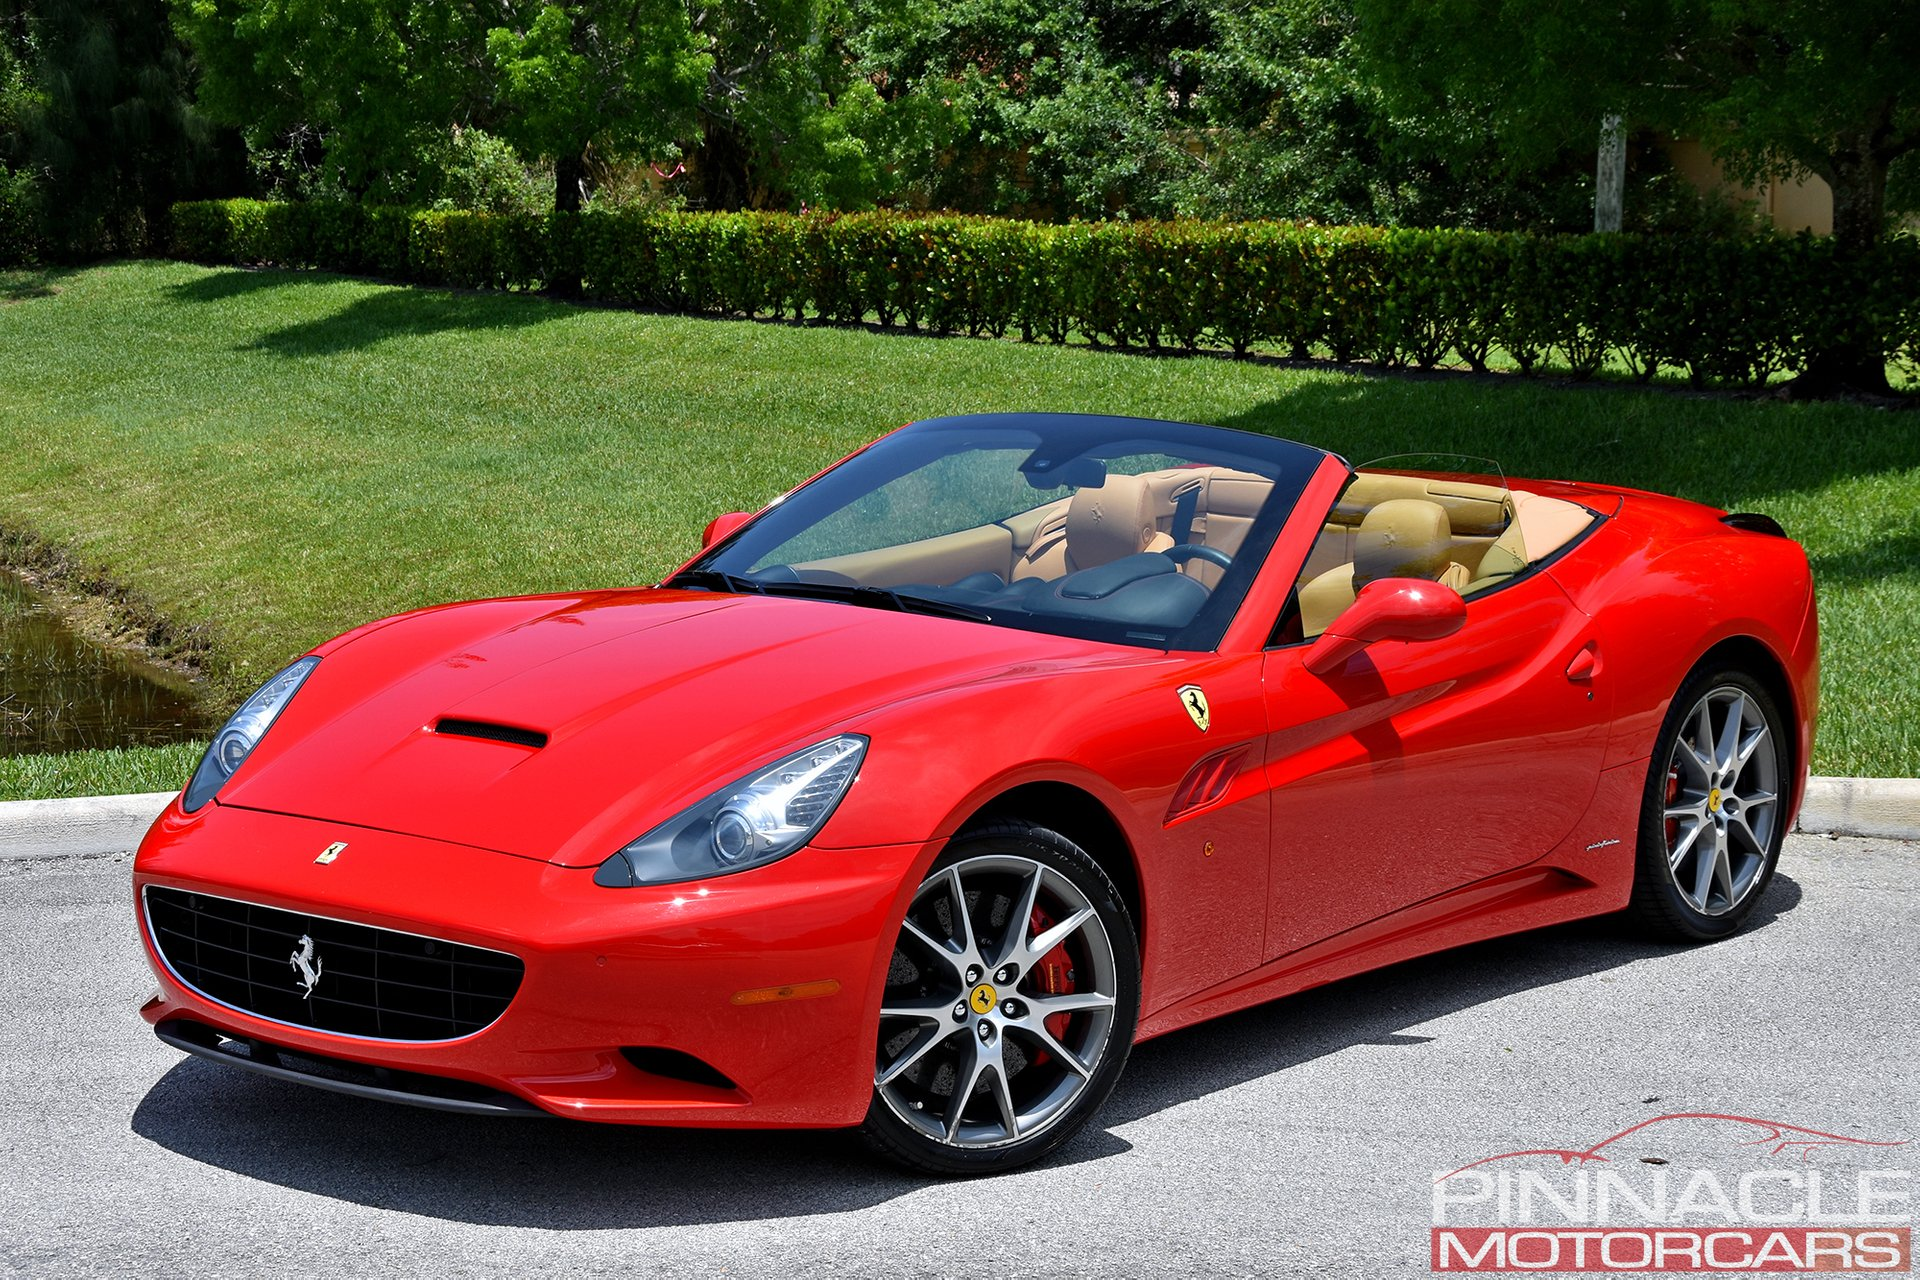 2011 Ferrari California Pinnacle Motorcars